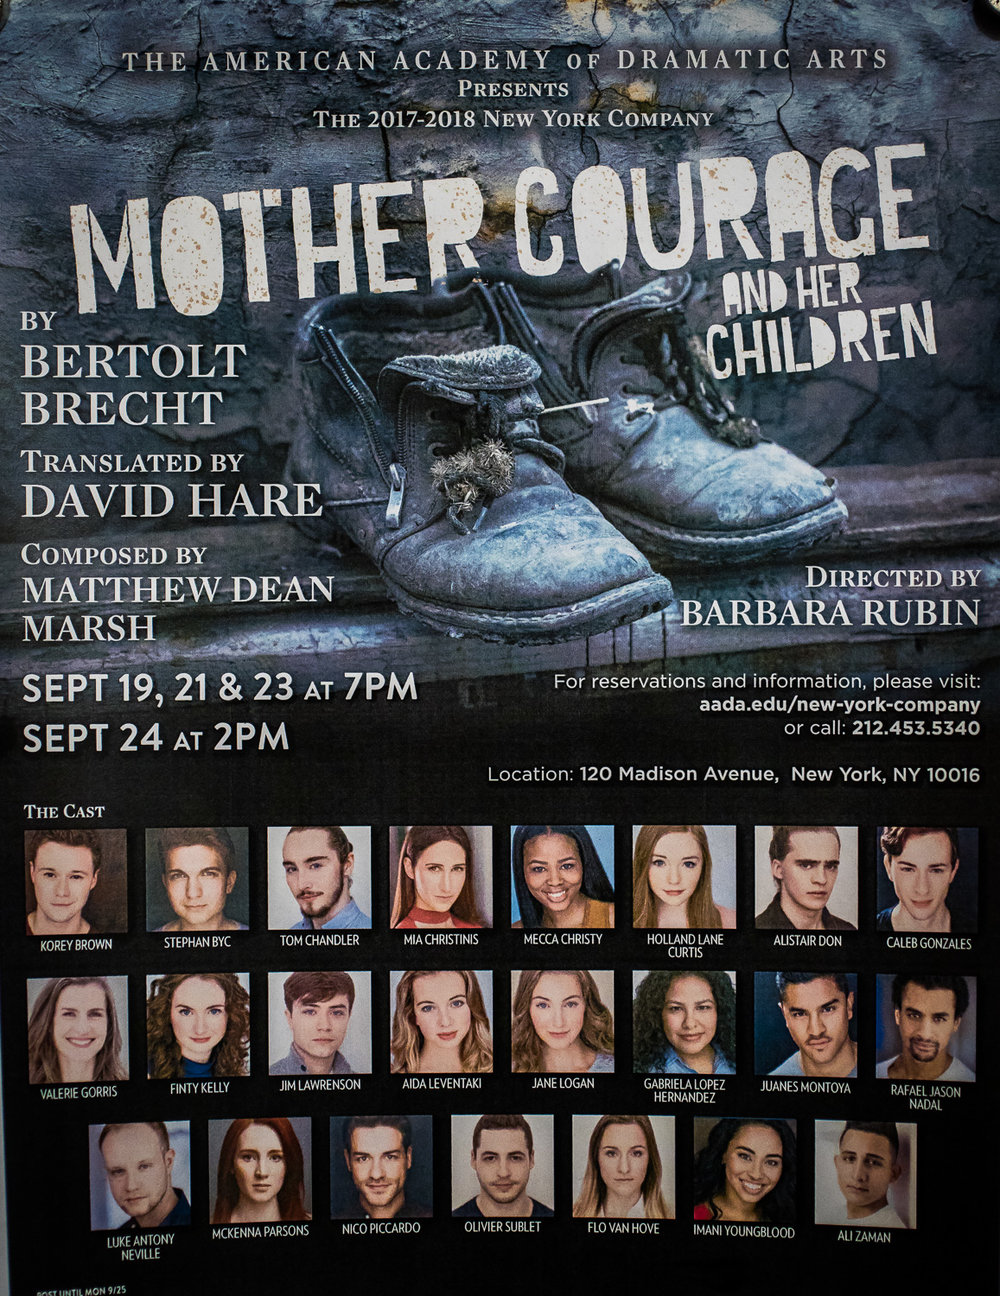 MOTHER COURAGE - Finty will be performing in her first show as part of the Academy Company. She is excited to be playing the role of Yvette Pottier, the camp whore, in Mother Courage, directed by Barbara Rubin with original music composed by Matthew Dean Marsh. Performance Dates: September 19th, 21st, 23rd and 24th 2017